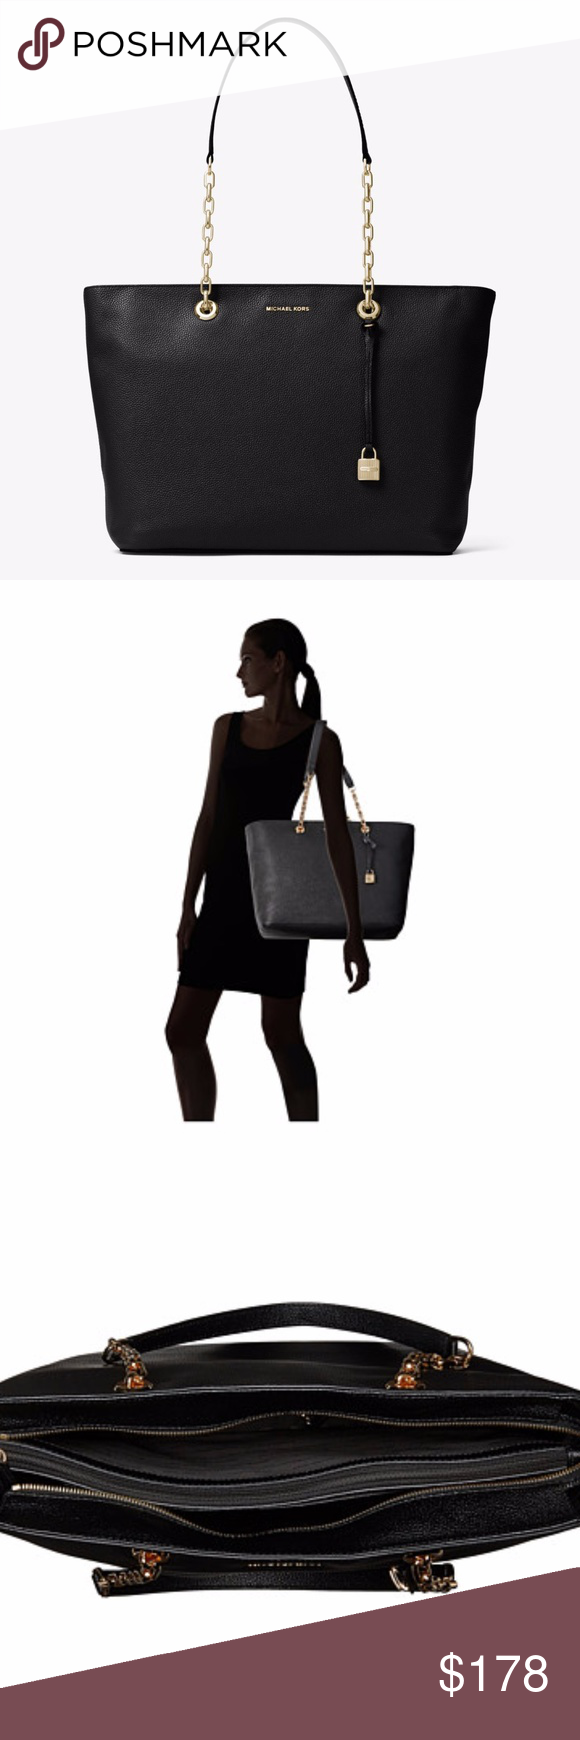 d983a3380dbc Michael Kors Mercer Chain Link Tote Black Leather New with tag! Comes with  dust bag. Free Gift! Michael Kors Mercer Chain Medium Top Zip Multifunction  Tote ...